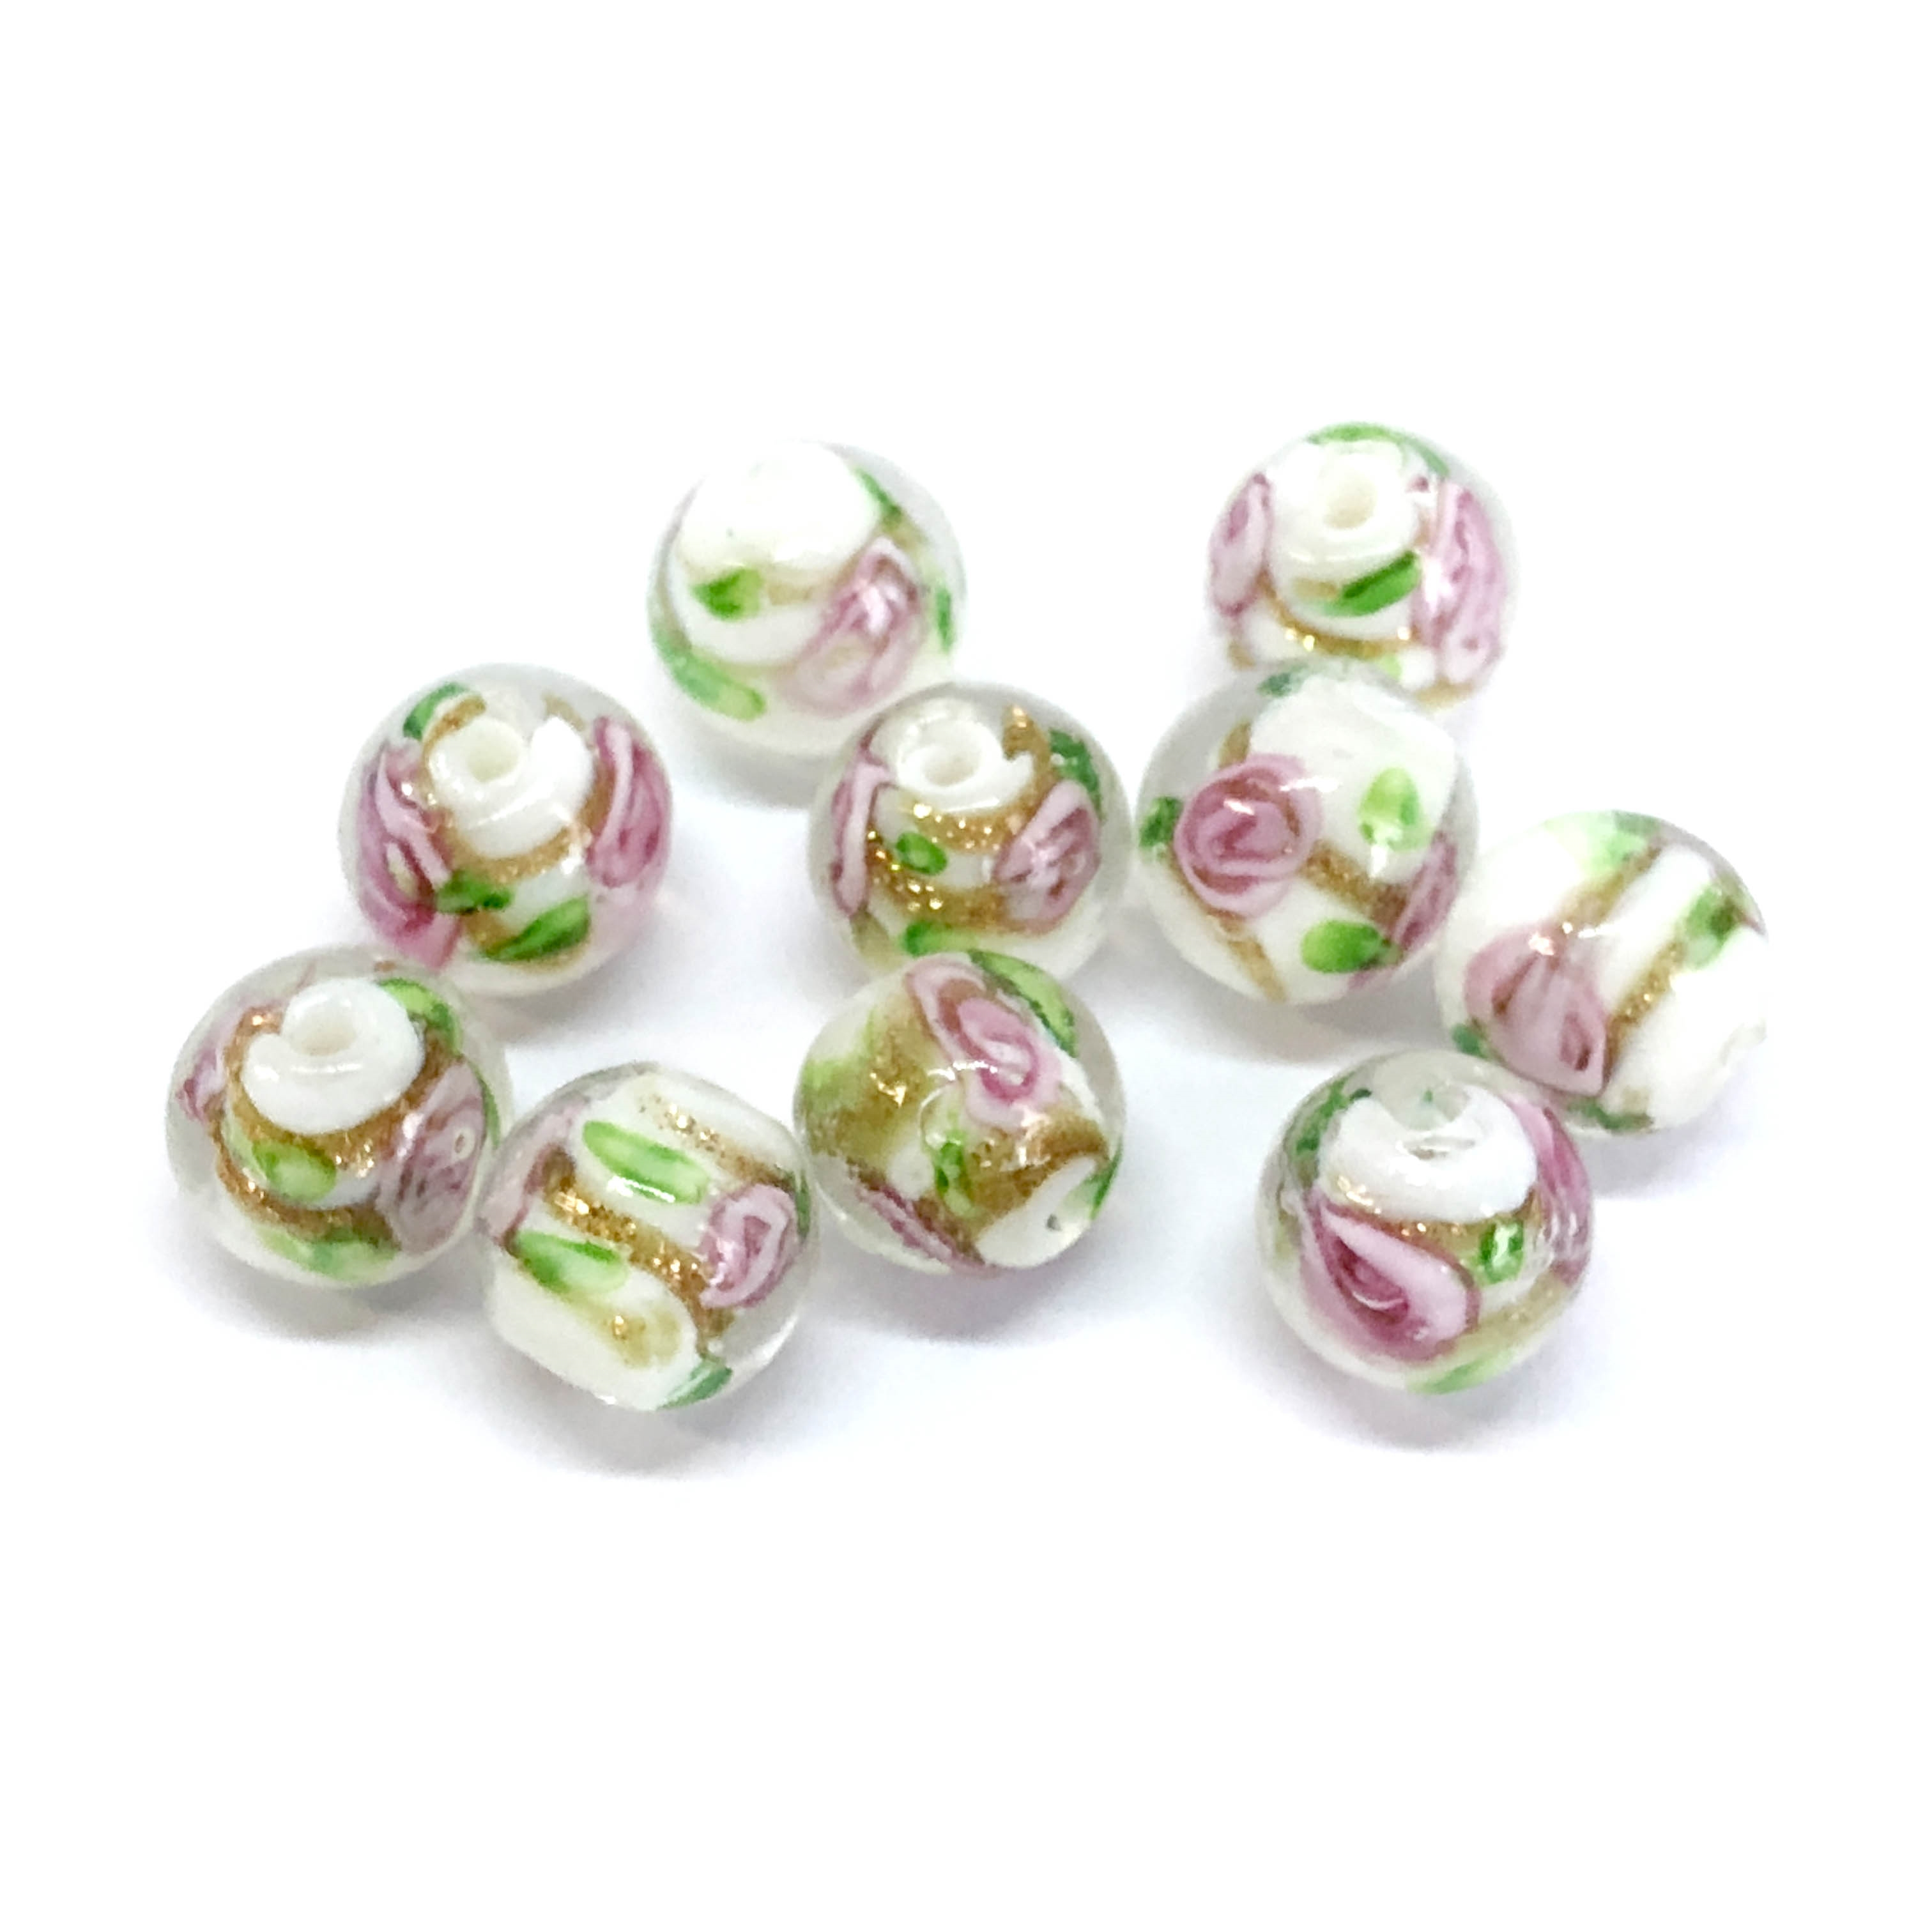 lampwork beads, glass beads, rosebud, pink beads, pink lampwork beads, 10mm, beads made by hand, lamp glass, pink rosebud bead, glass rose bead, pink rose, pink and gold, beading supplies, jewelry making supplies, B'sue Boutiques, 07875